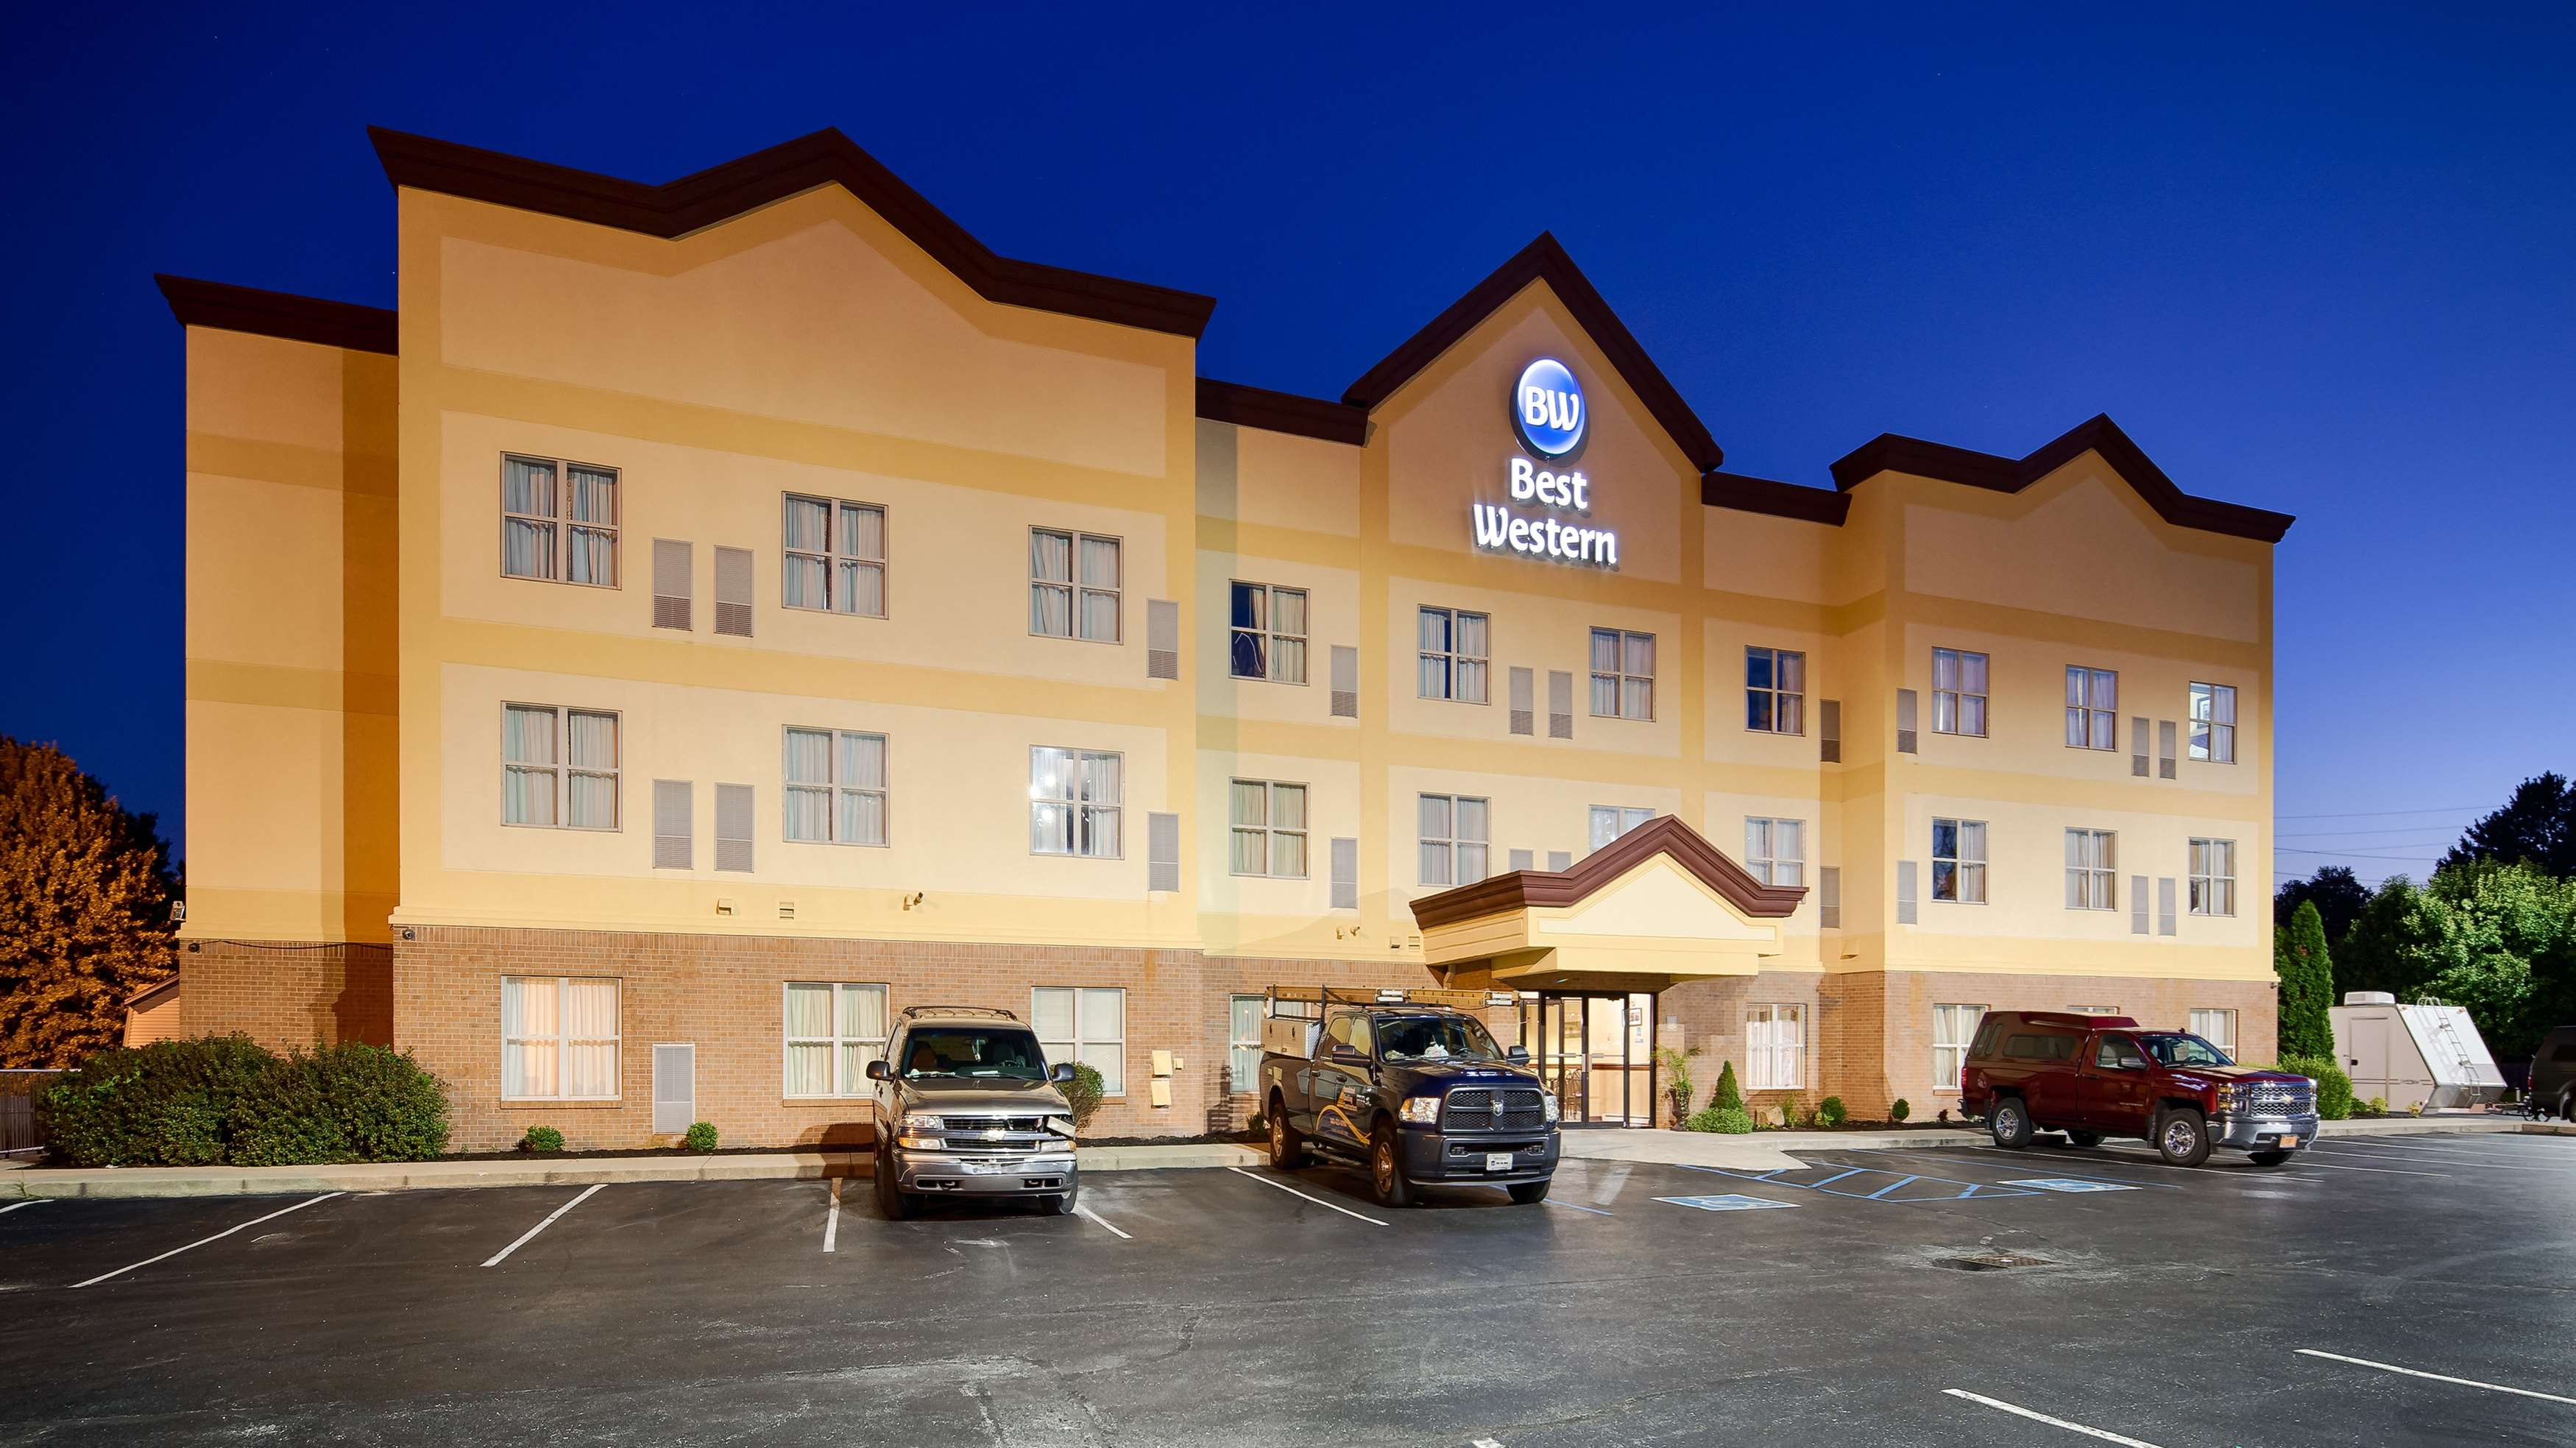 Best western airport suites in indianapolis in 46241 for Hotels near indianapolis motor speedway indiana